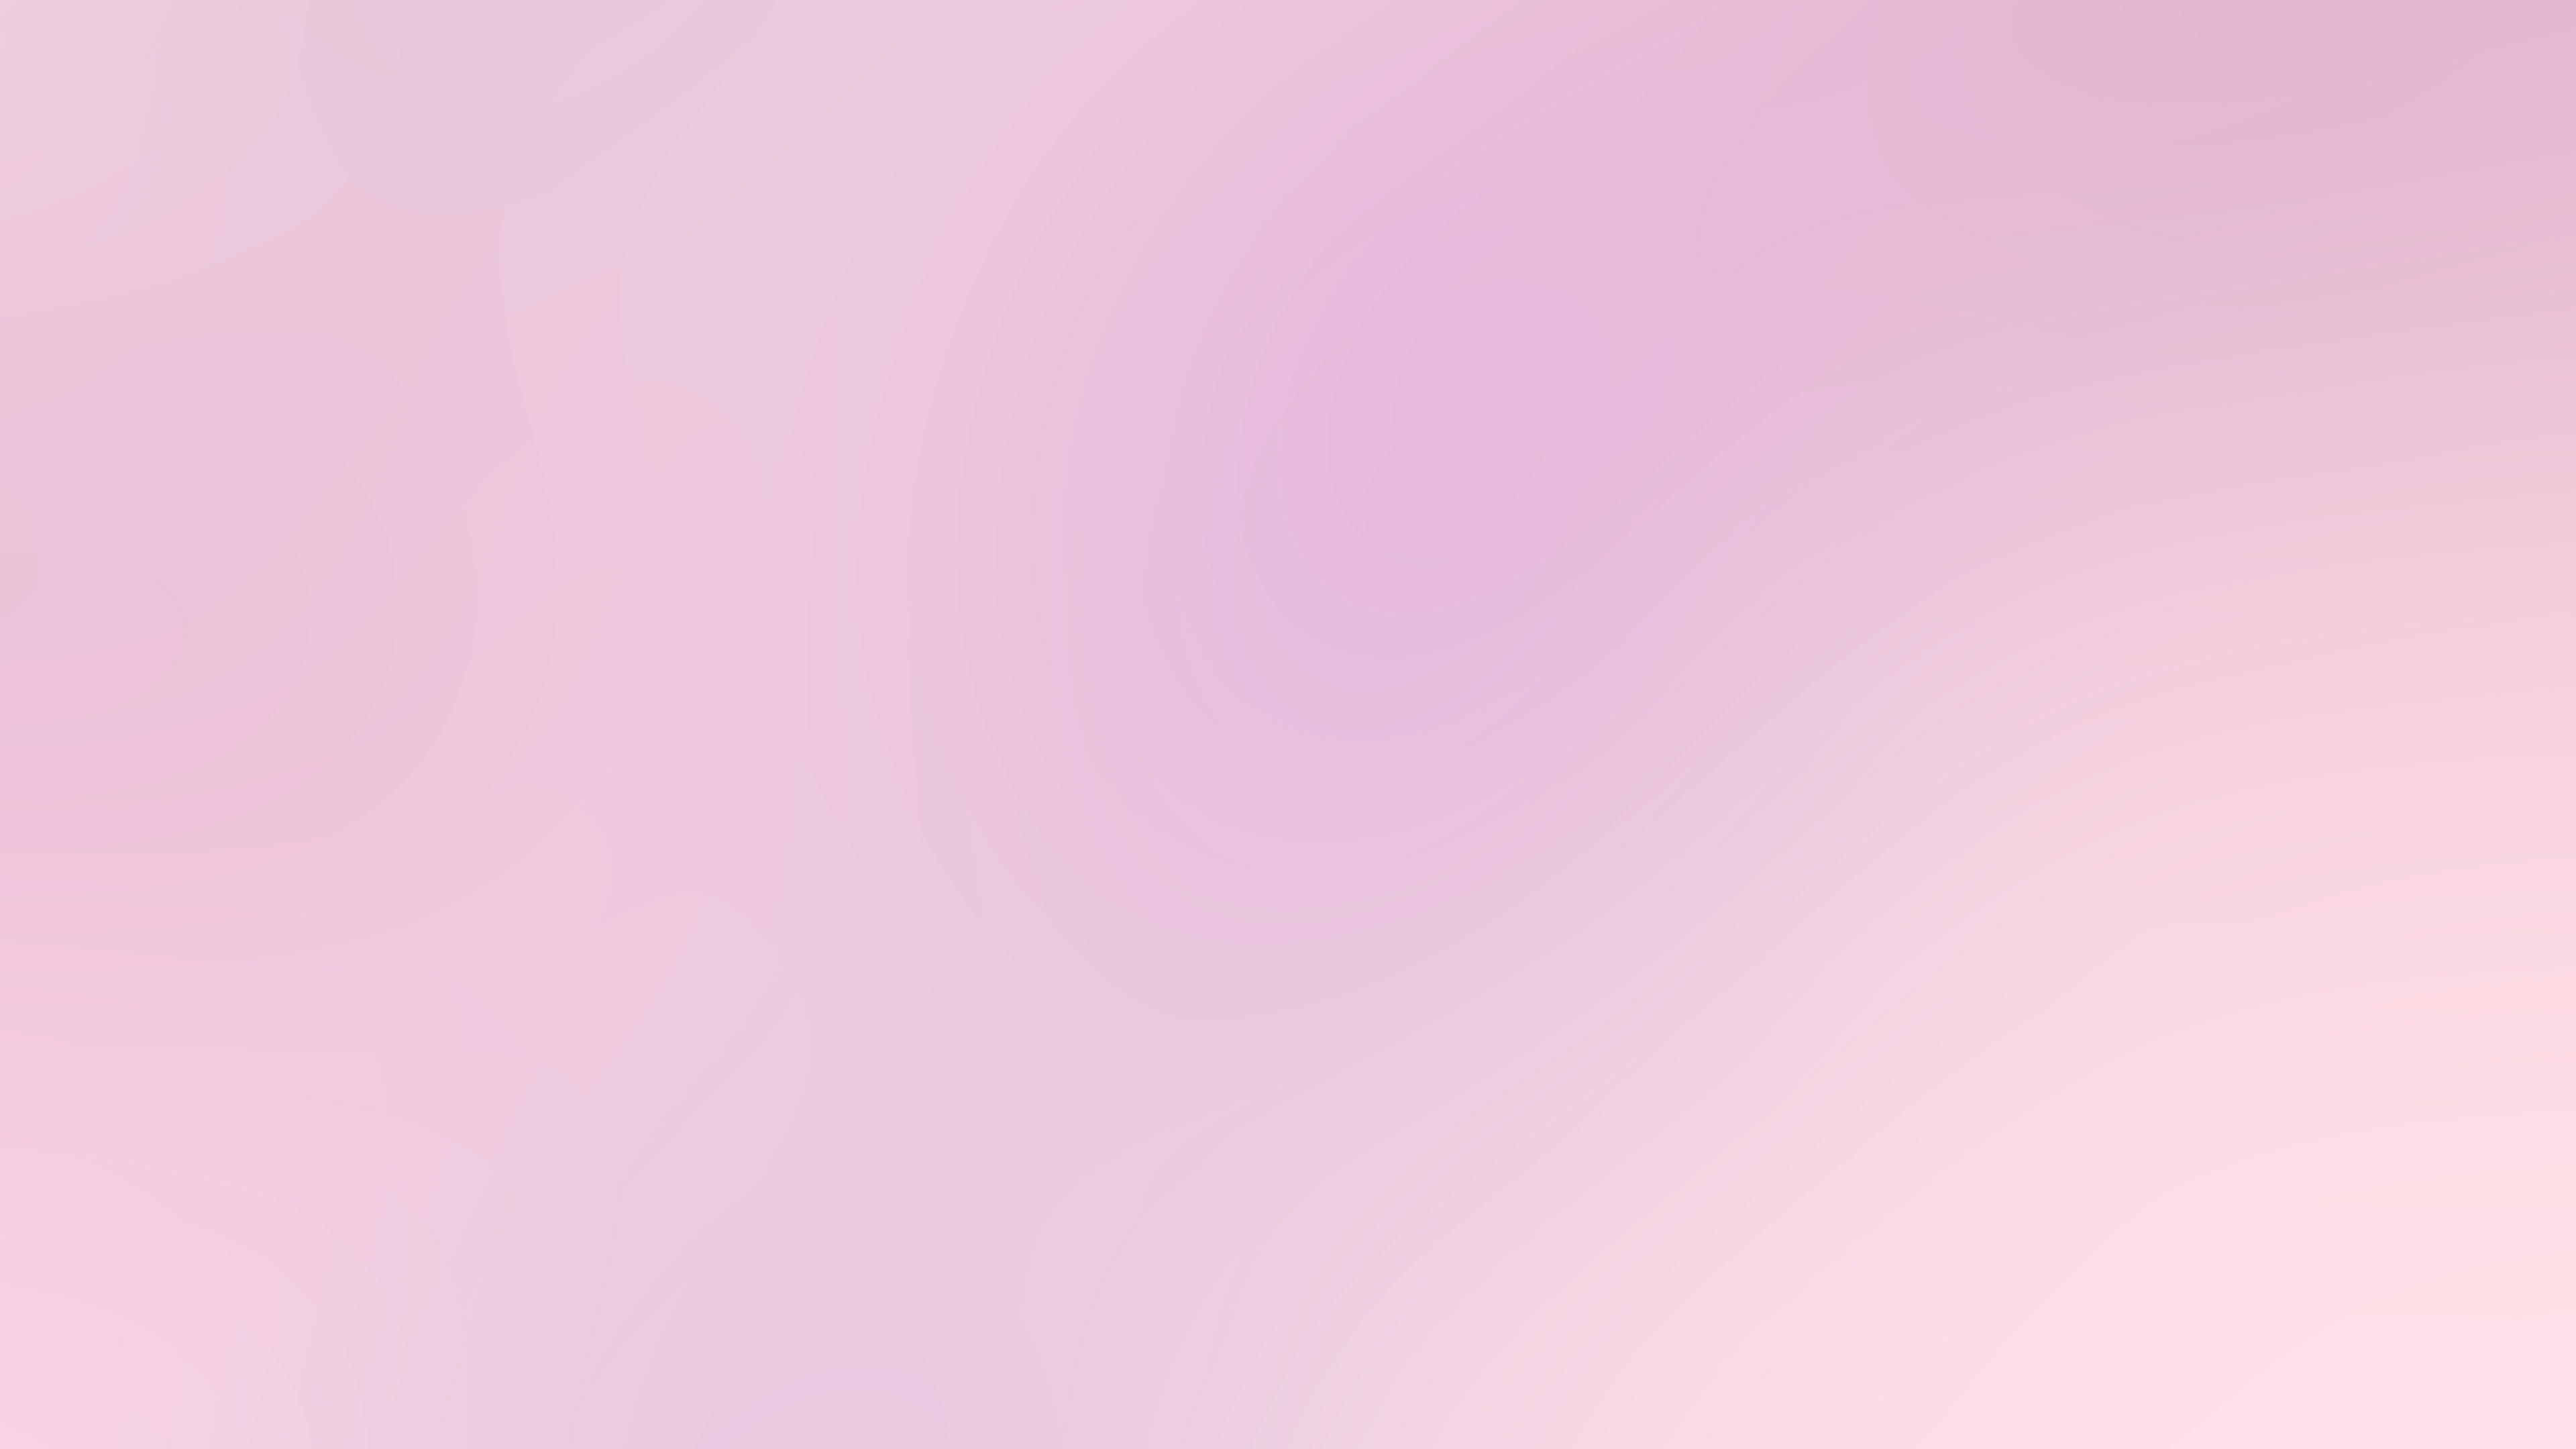 si09-soft-pink-baby-gradation-blur-wallpaper